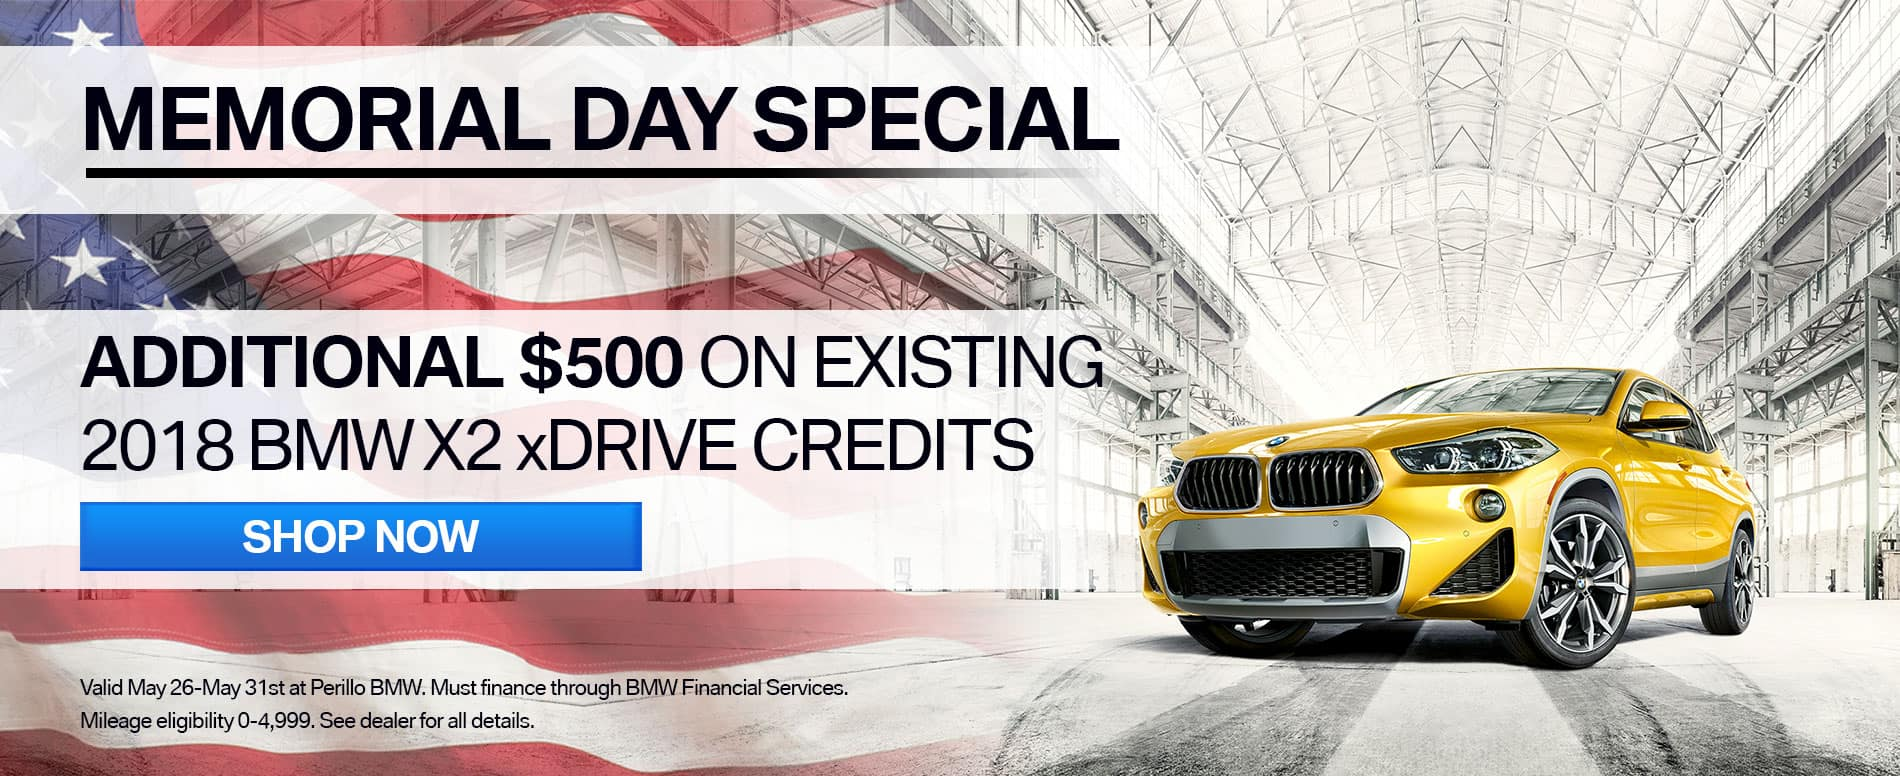 Memorial Day Offer at Perillo BMW Chicago